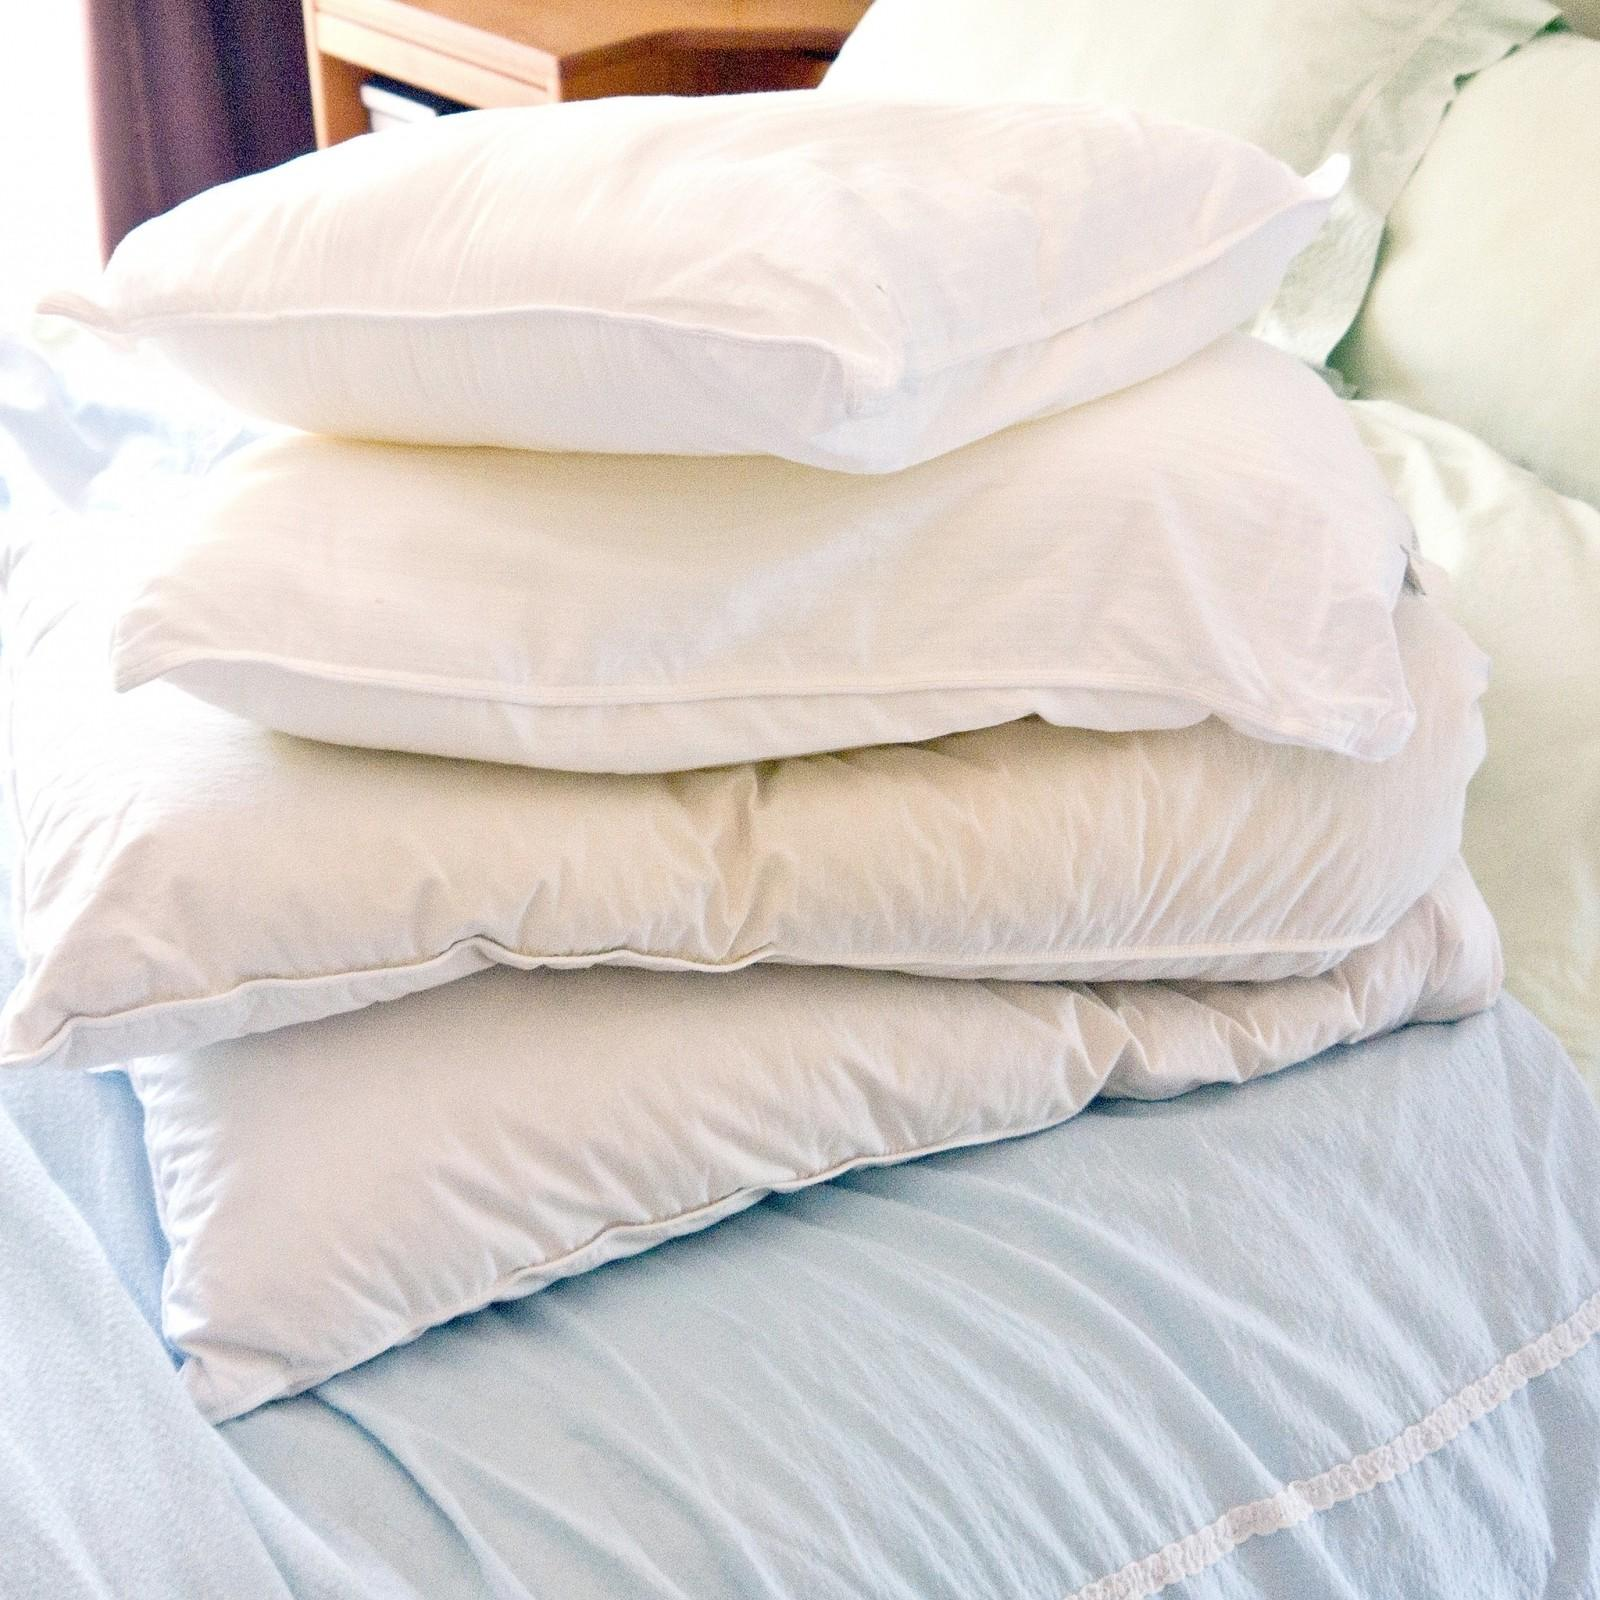 Wash Pillows Popsugar Smart Living Can